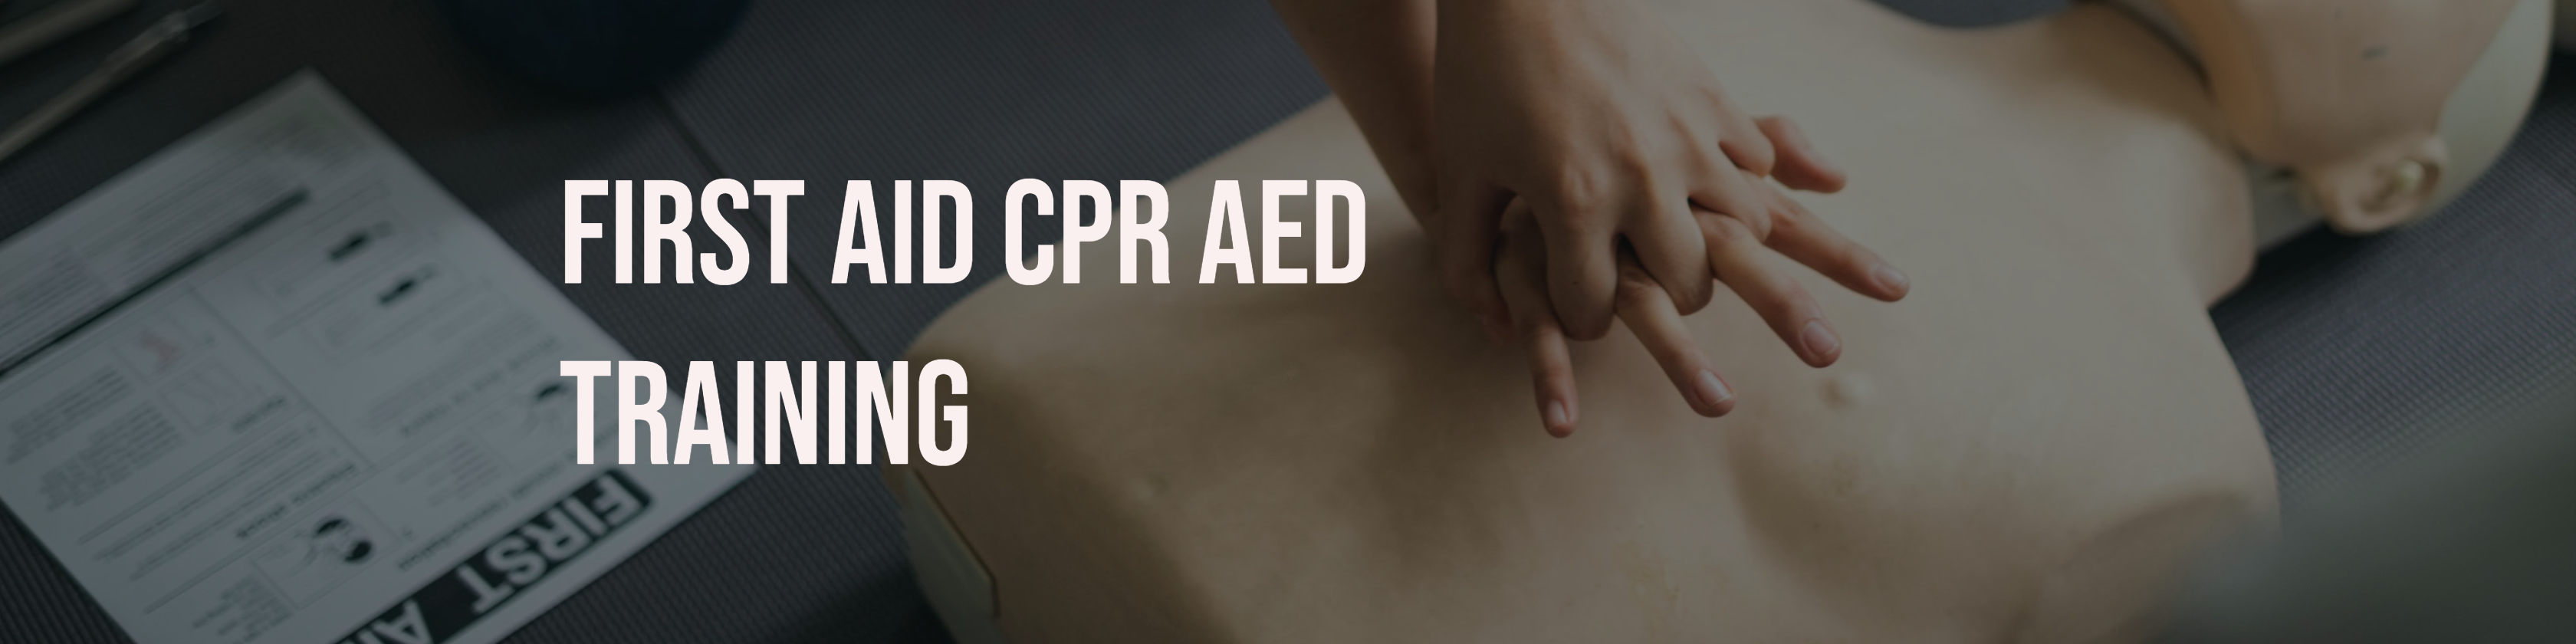 First Aid CPR AED Training Ge Certified